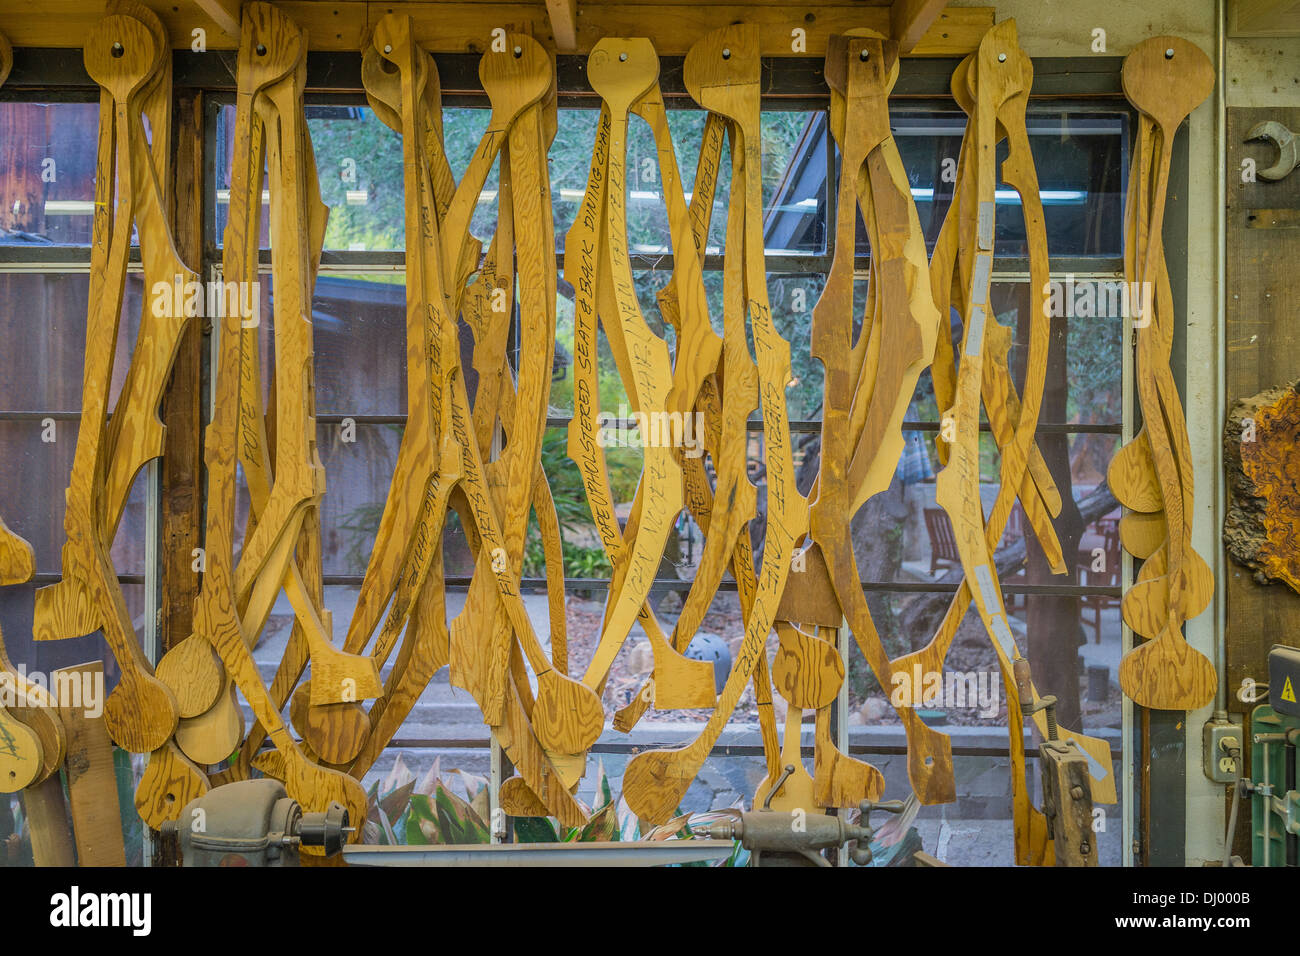 Wooden templates in Sam Maloof's shop of the famous artist/woodworker Sam Maloof. - Stock Image